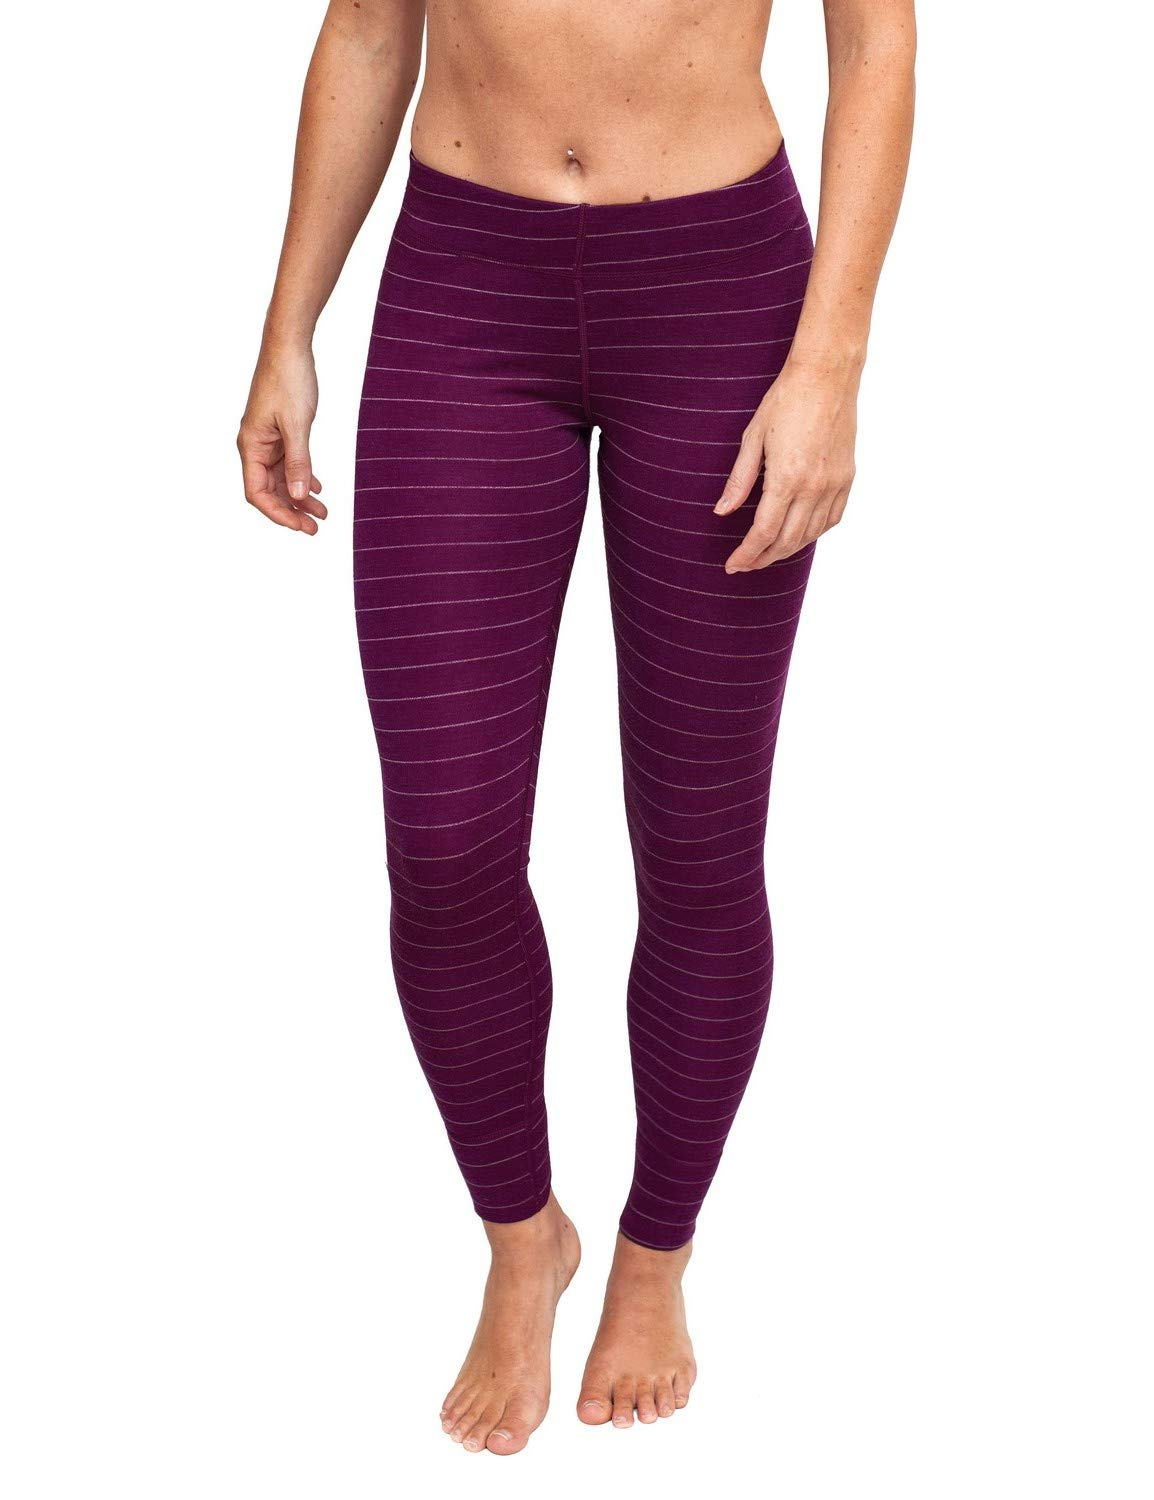 Woolx Women's Avery Midweight Merino Wool Base Layer Leggings For Warmth, Mulberry Stripe, X-Small